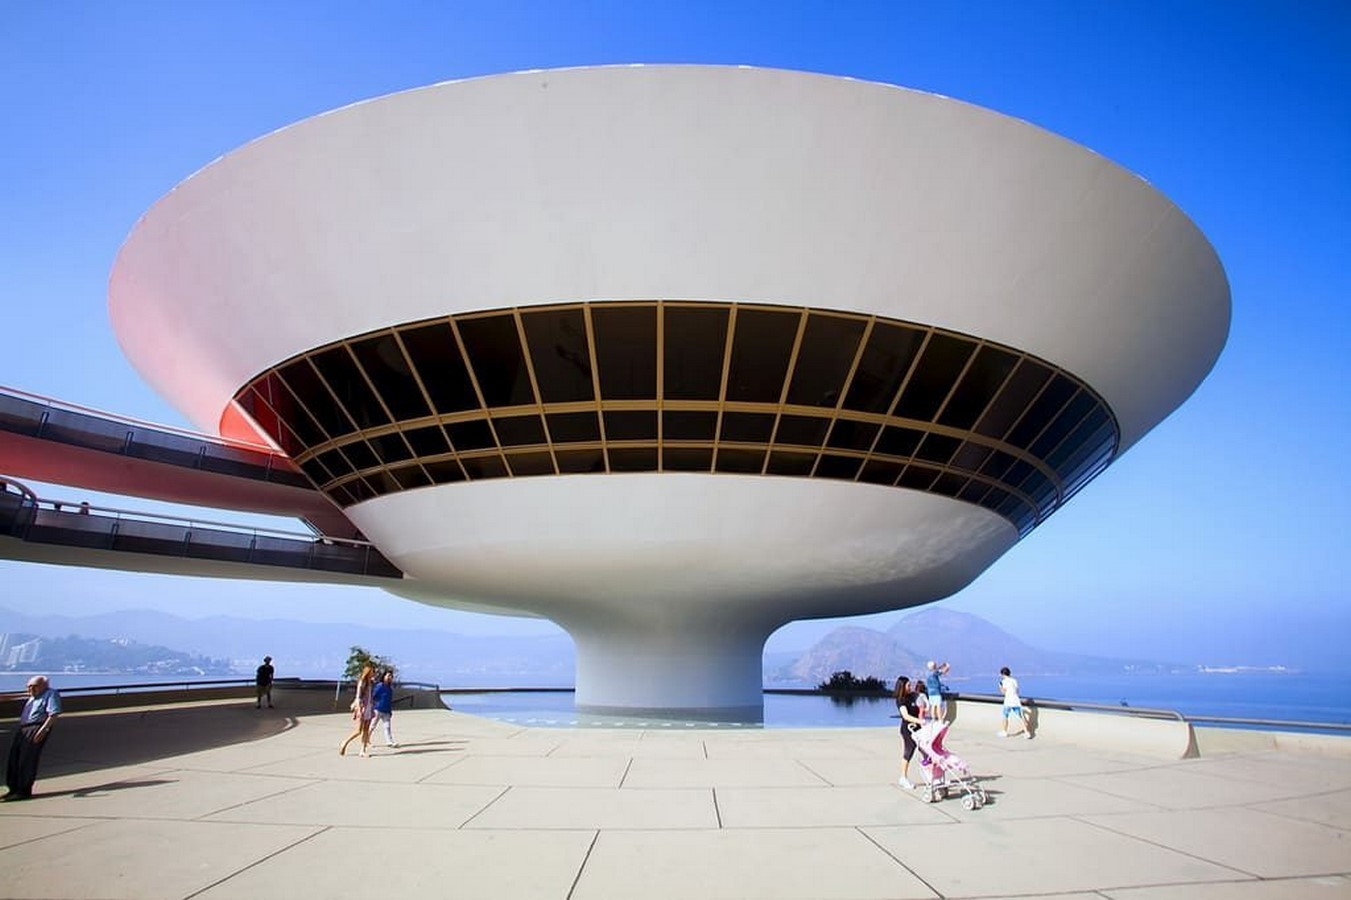 Niterói Contemporary Art Museum by Oscar Niemeyer: Iconic Saucer-Shaped Structure Sheet2